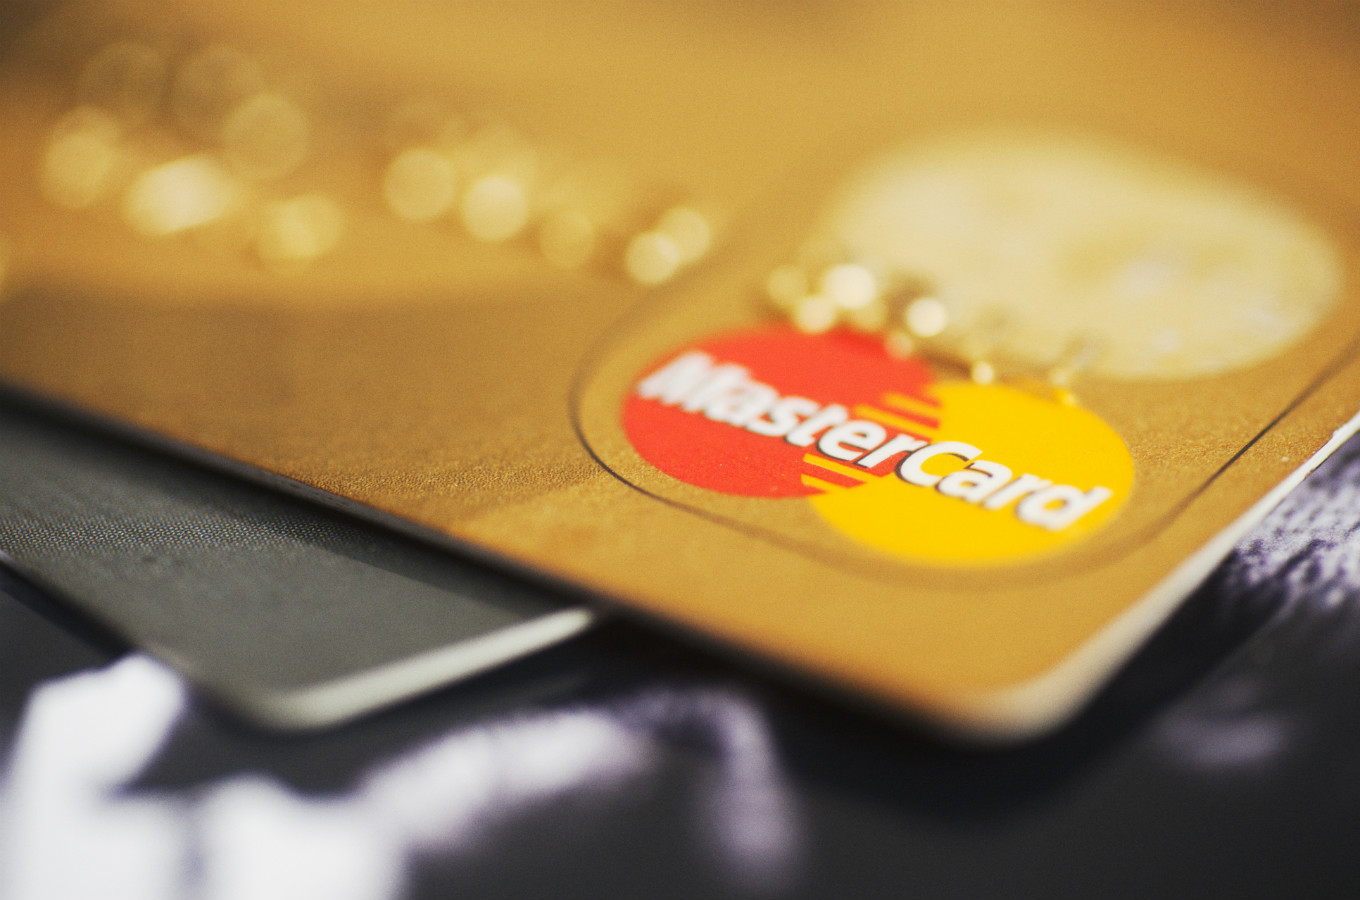 CEO Mastercard: Regulation wasn't the only reason we left Libra